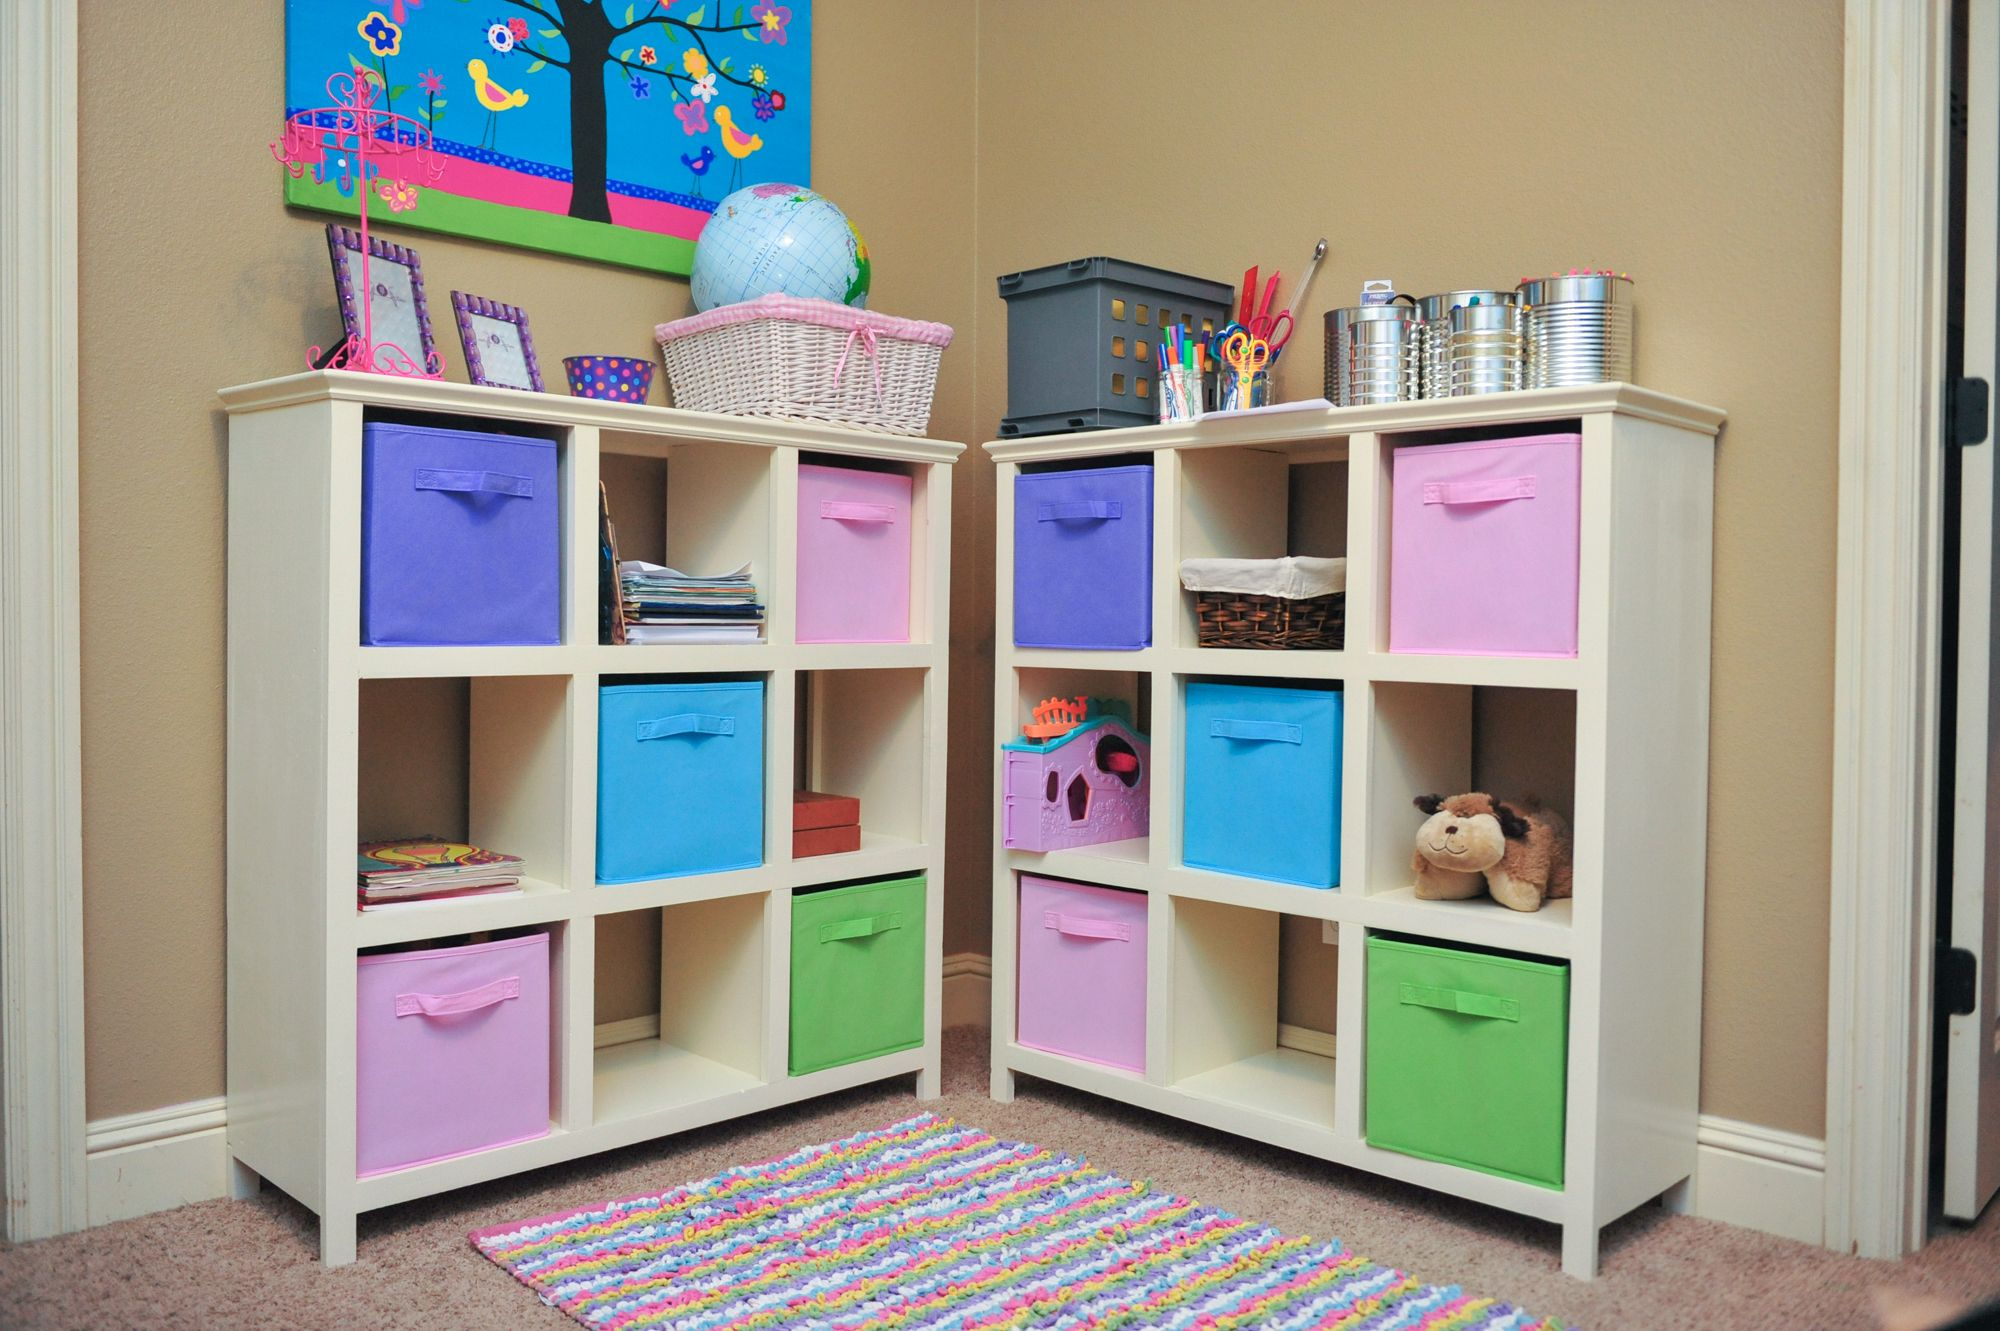 9 cube bookshelf do it yourself home projects from ana white 9 cube bookshelf do it yourself home projects from ana white house furniture pinterest ana white cube and craft desk solutioingenieria Choice Image